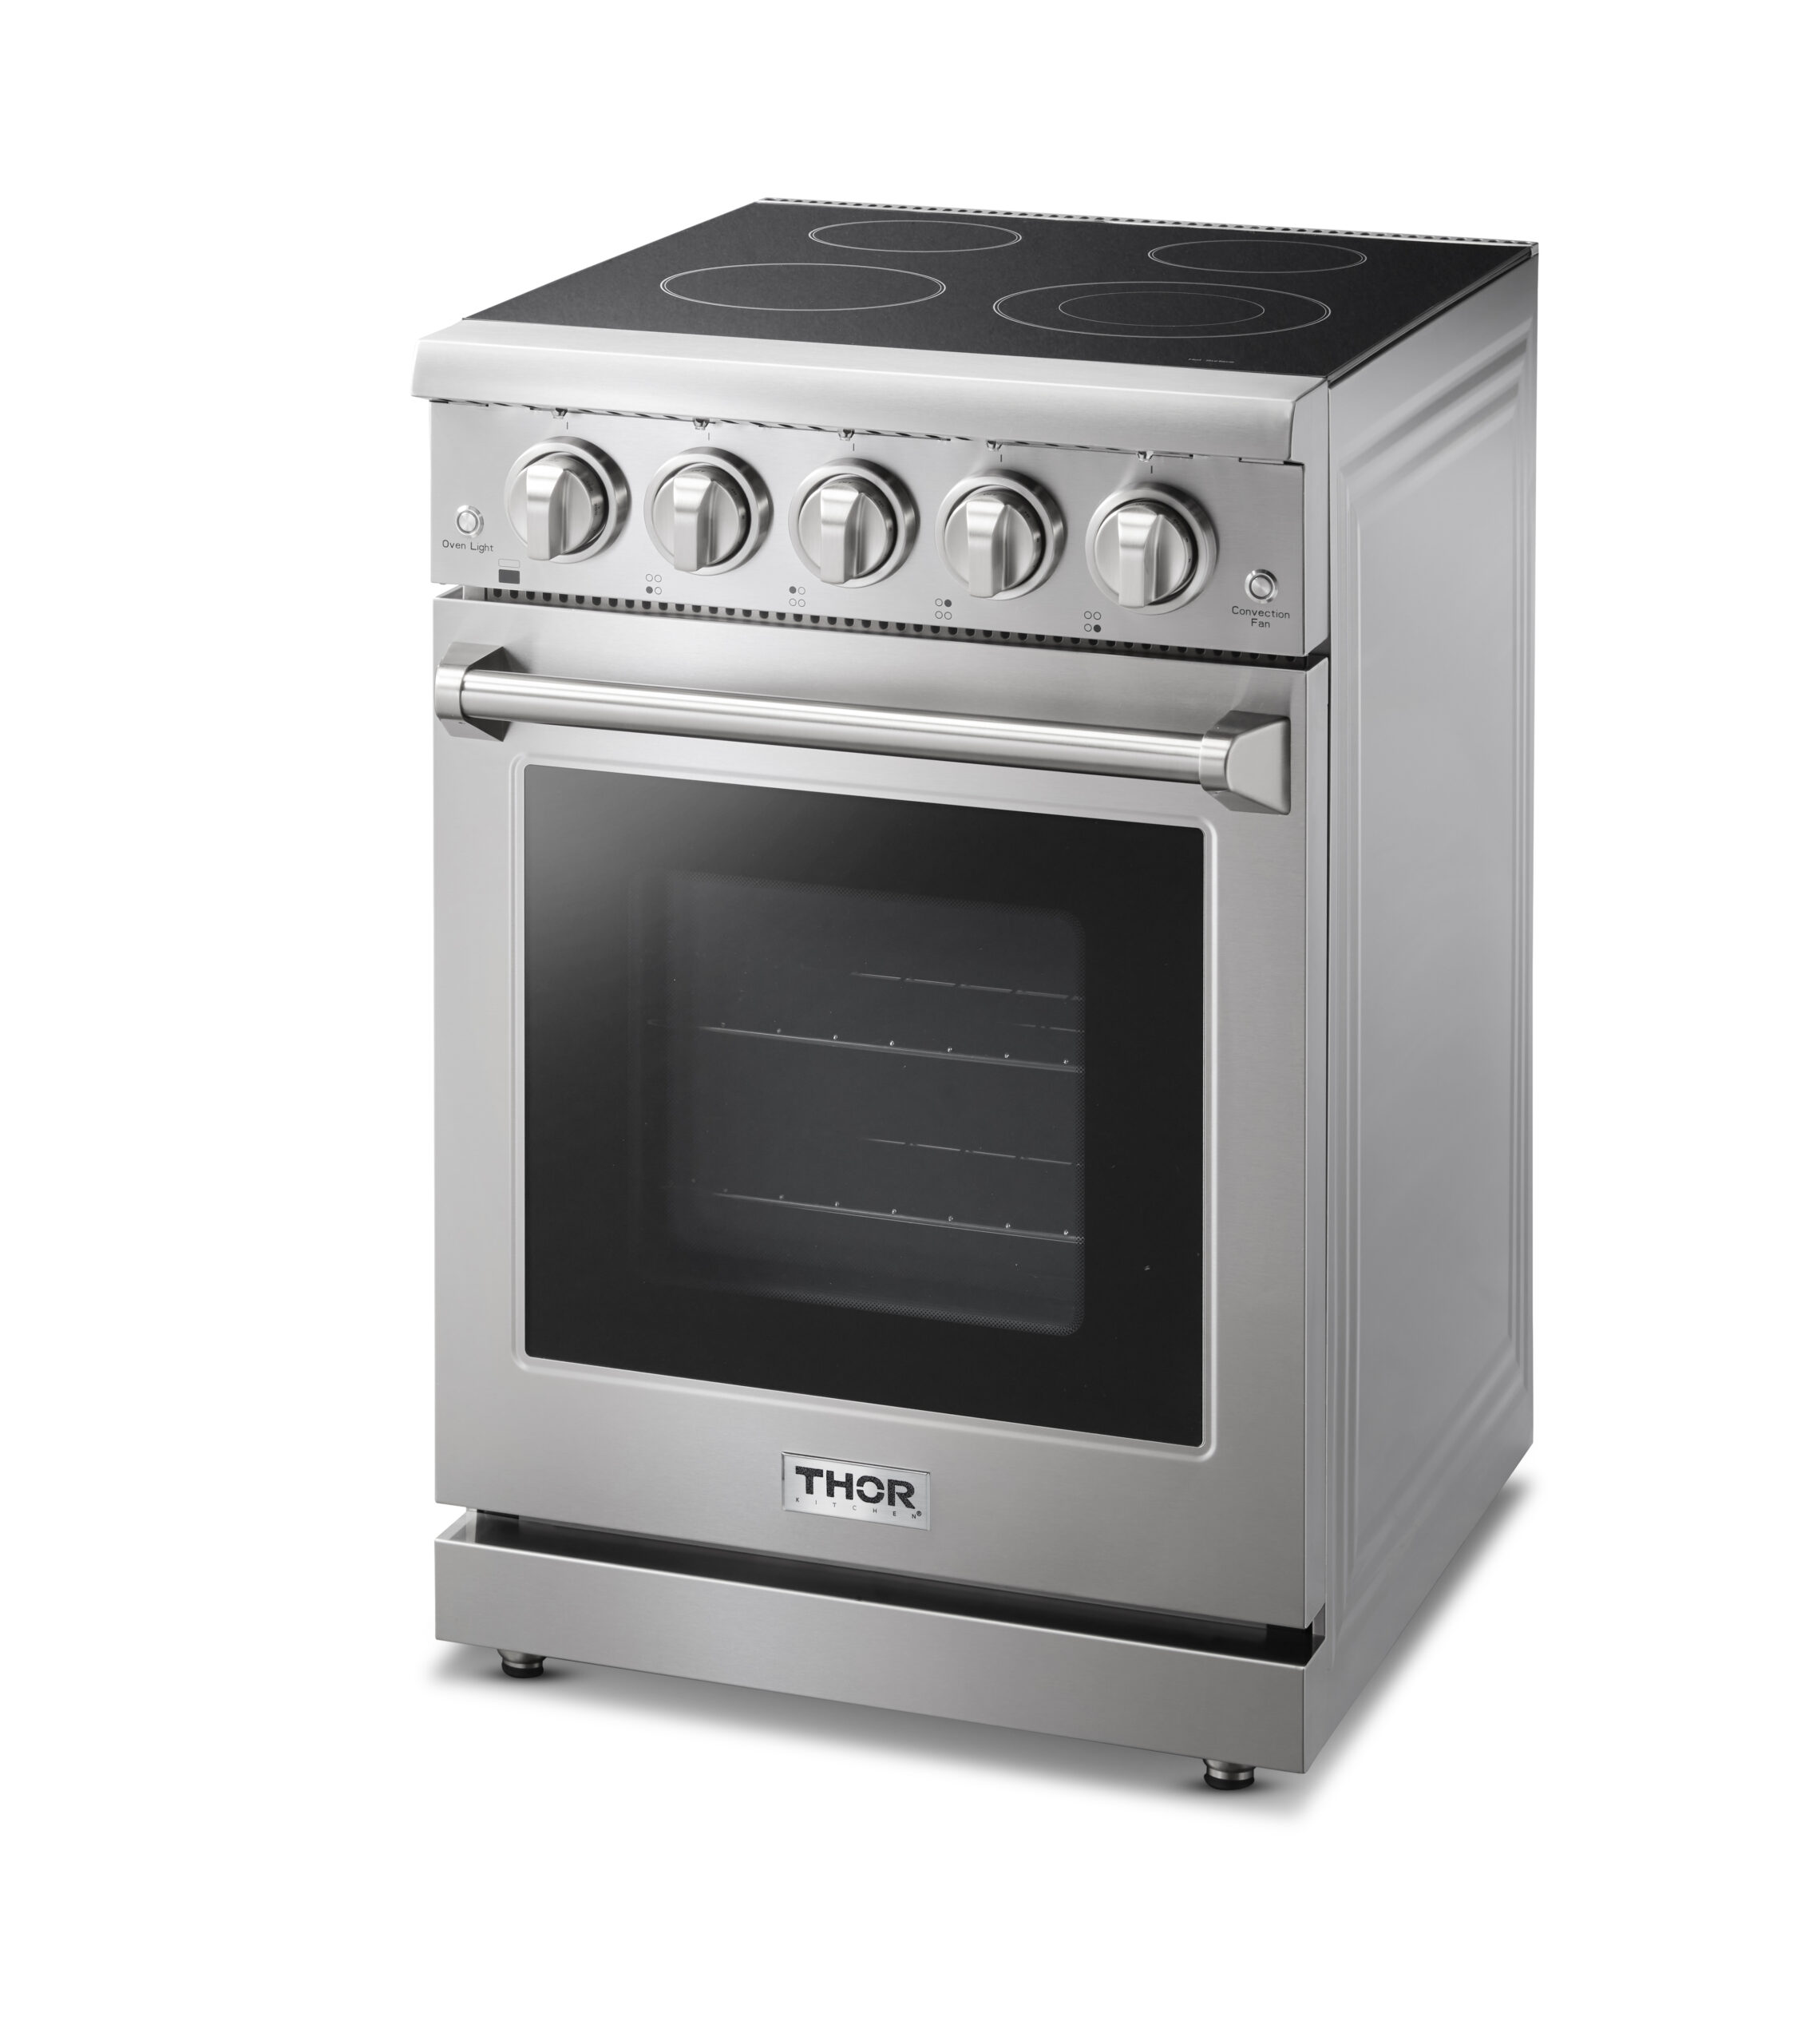 THOR Kitchen's new 24-inch Professional Electric Range offers clean-energy option perfect for small home living